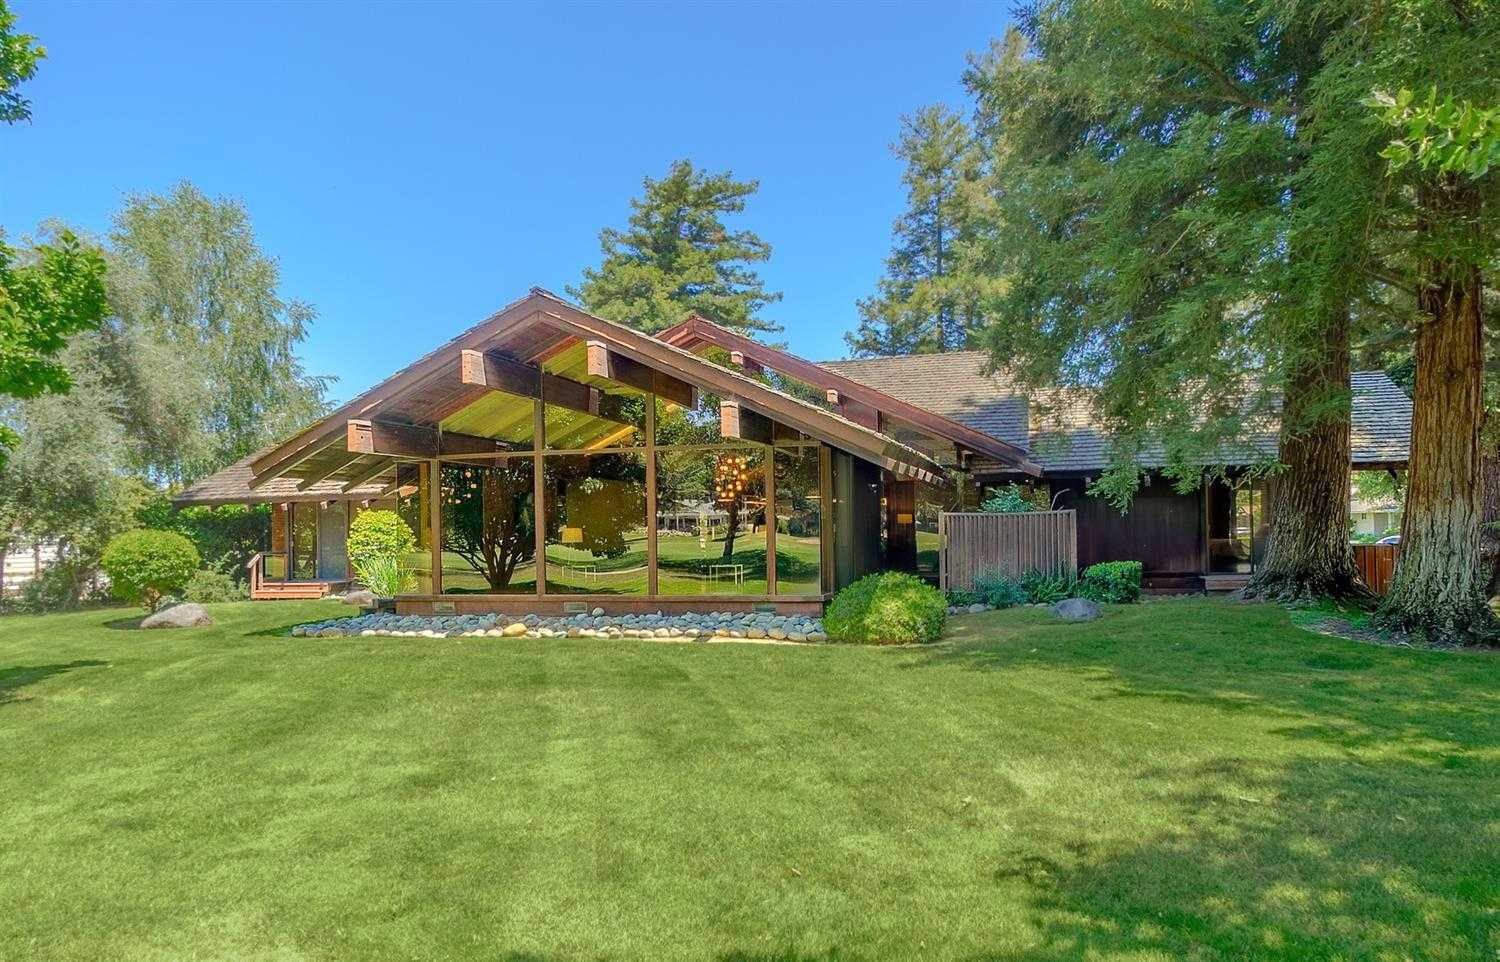 $1,599,000 - 3Br/3Ba -  for Sale in El Macero, El Macero